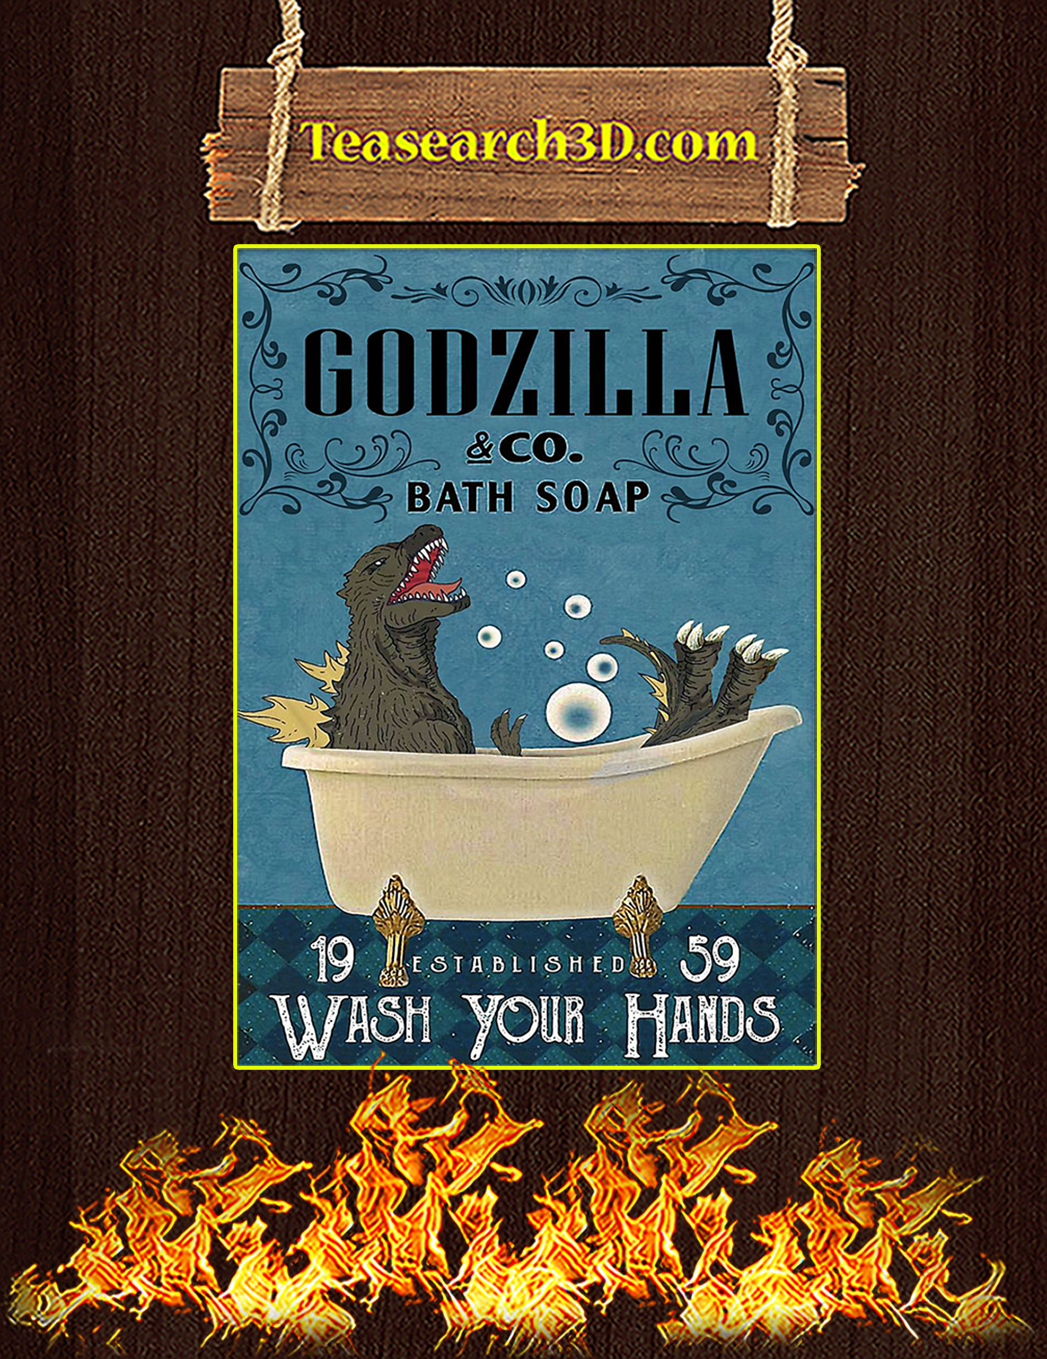 Godzilla co bath soap wash your hands poster A1